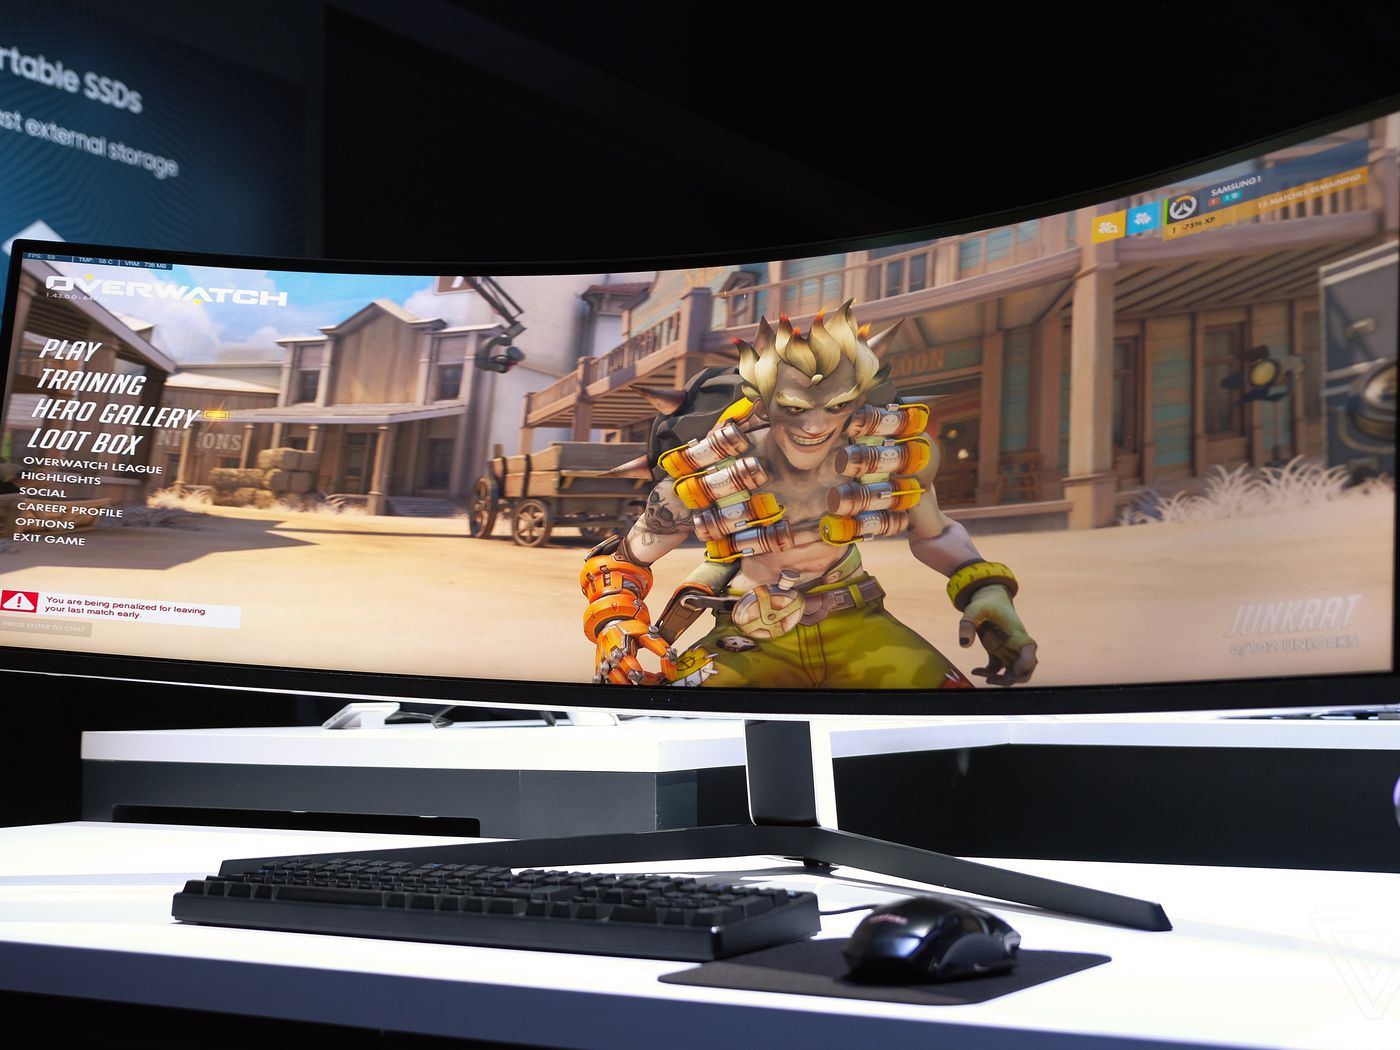 2020 ultrawide monitors